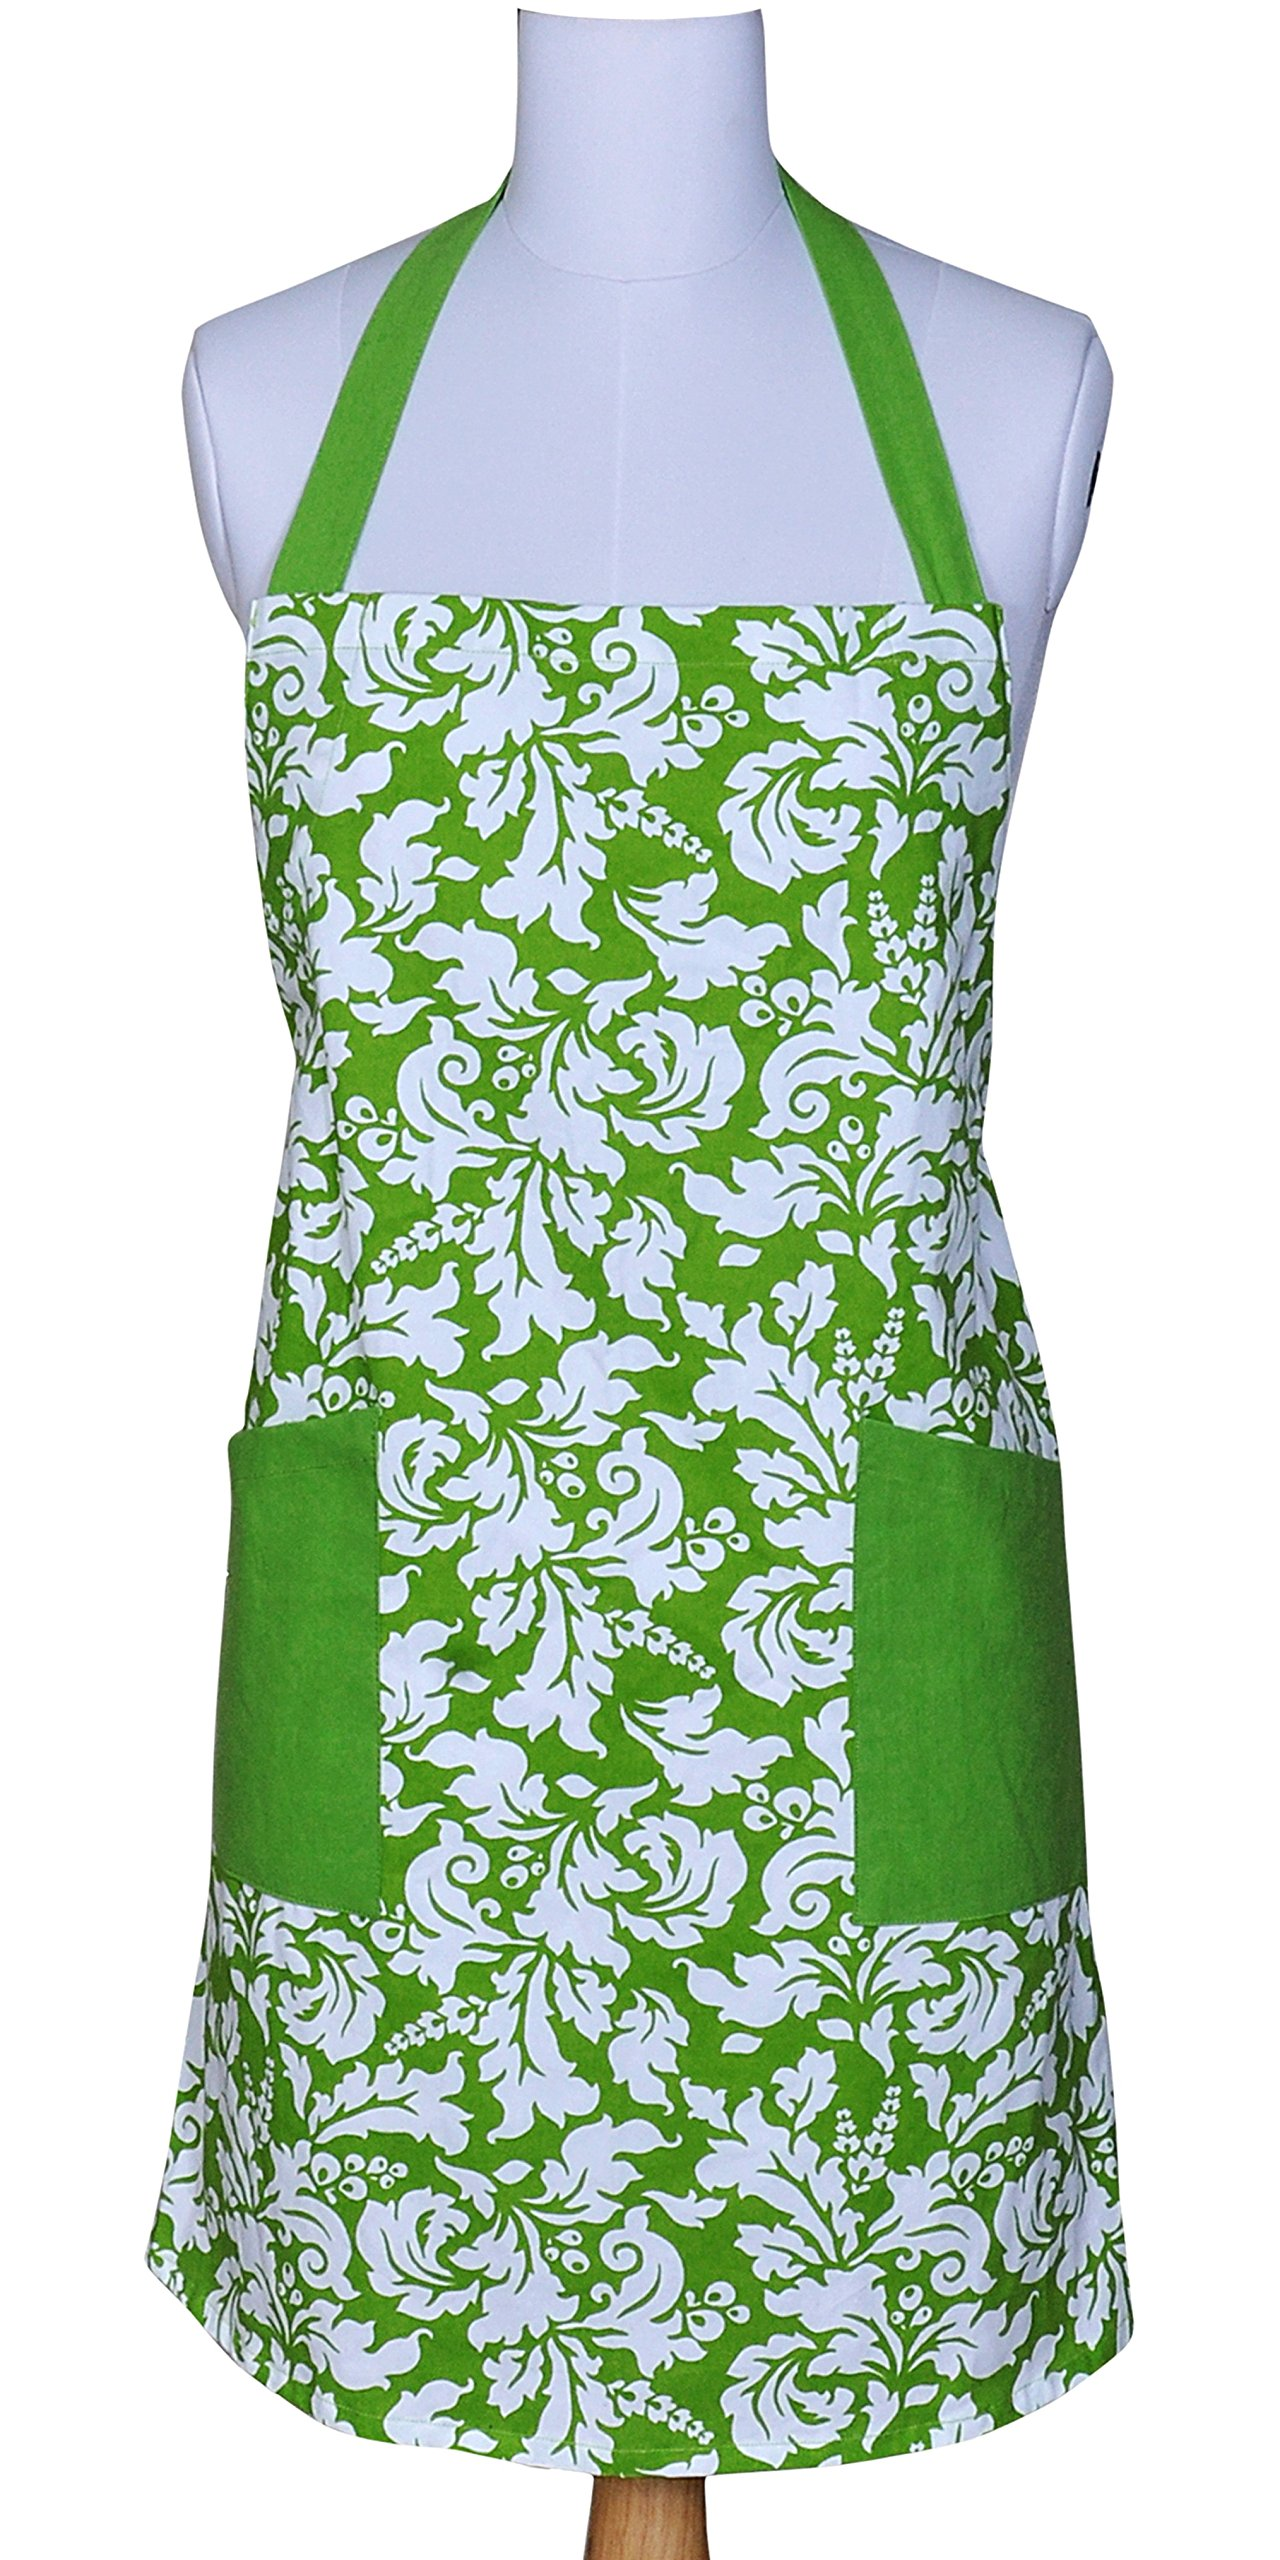 Yourtablecloth Kitchen Apron for Women and Men 100% Cotton, Adjustable Size, 2 Side Pockets-Preferred Choice for Chef Aprons & Ideal for Home Chefs too-be it Baking, Cooking, Barbecuing- Apple Green